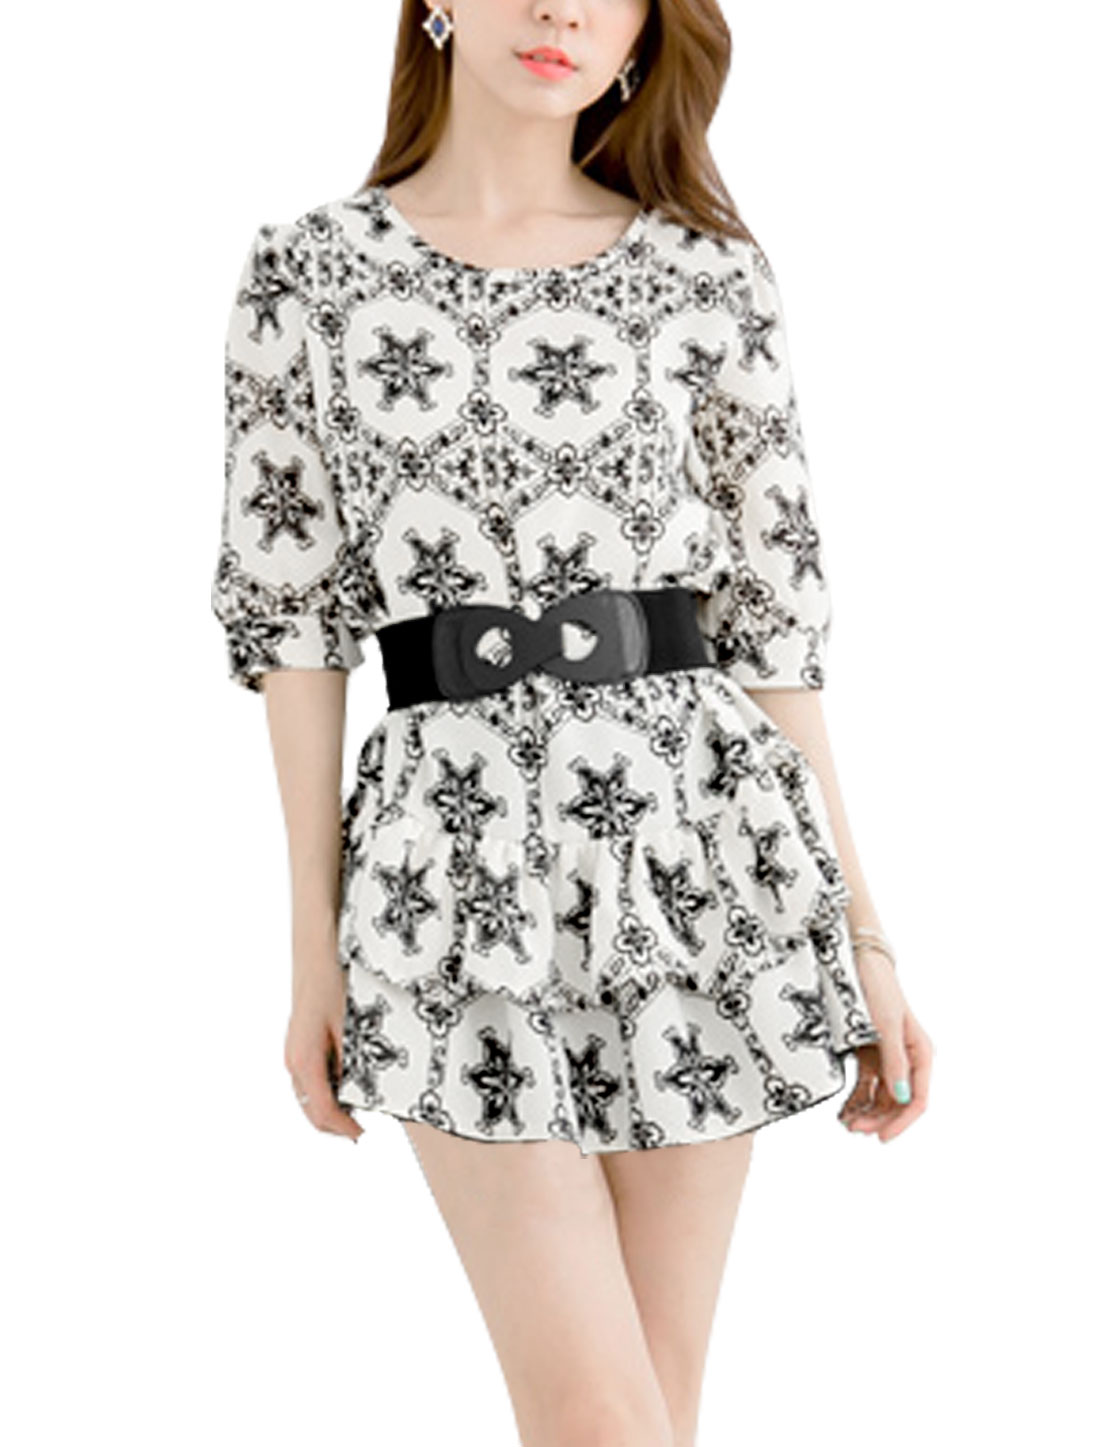 Lady Self Belt Elbow Sleeve Floral Print Tiered Hem Dress Black White XS